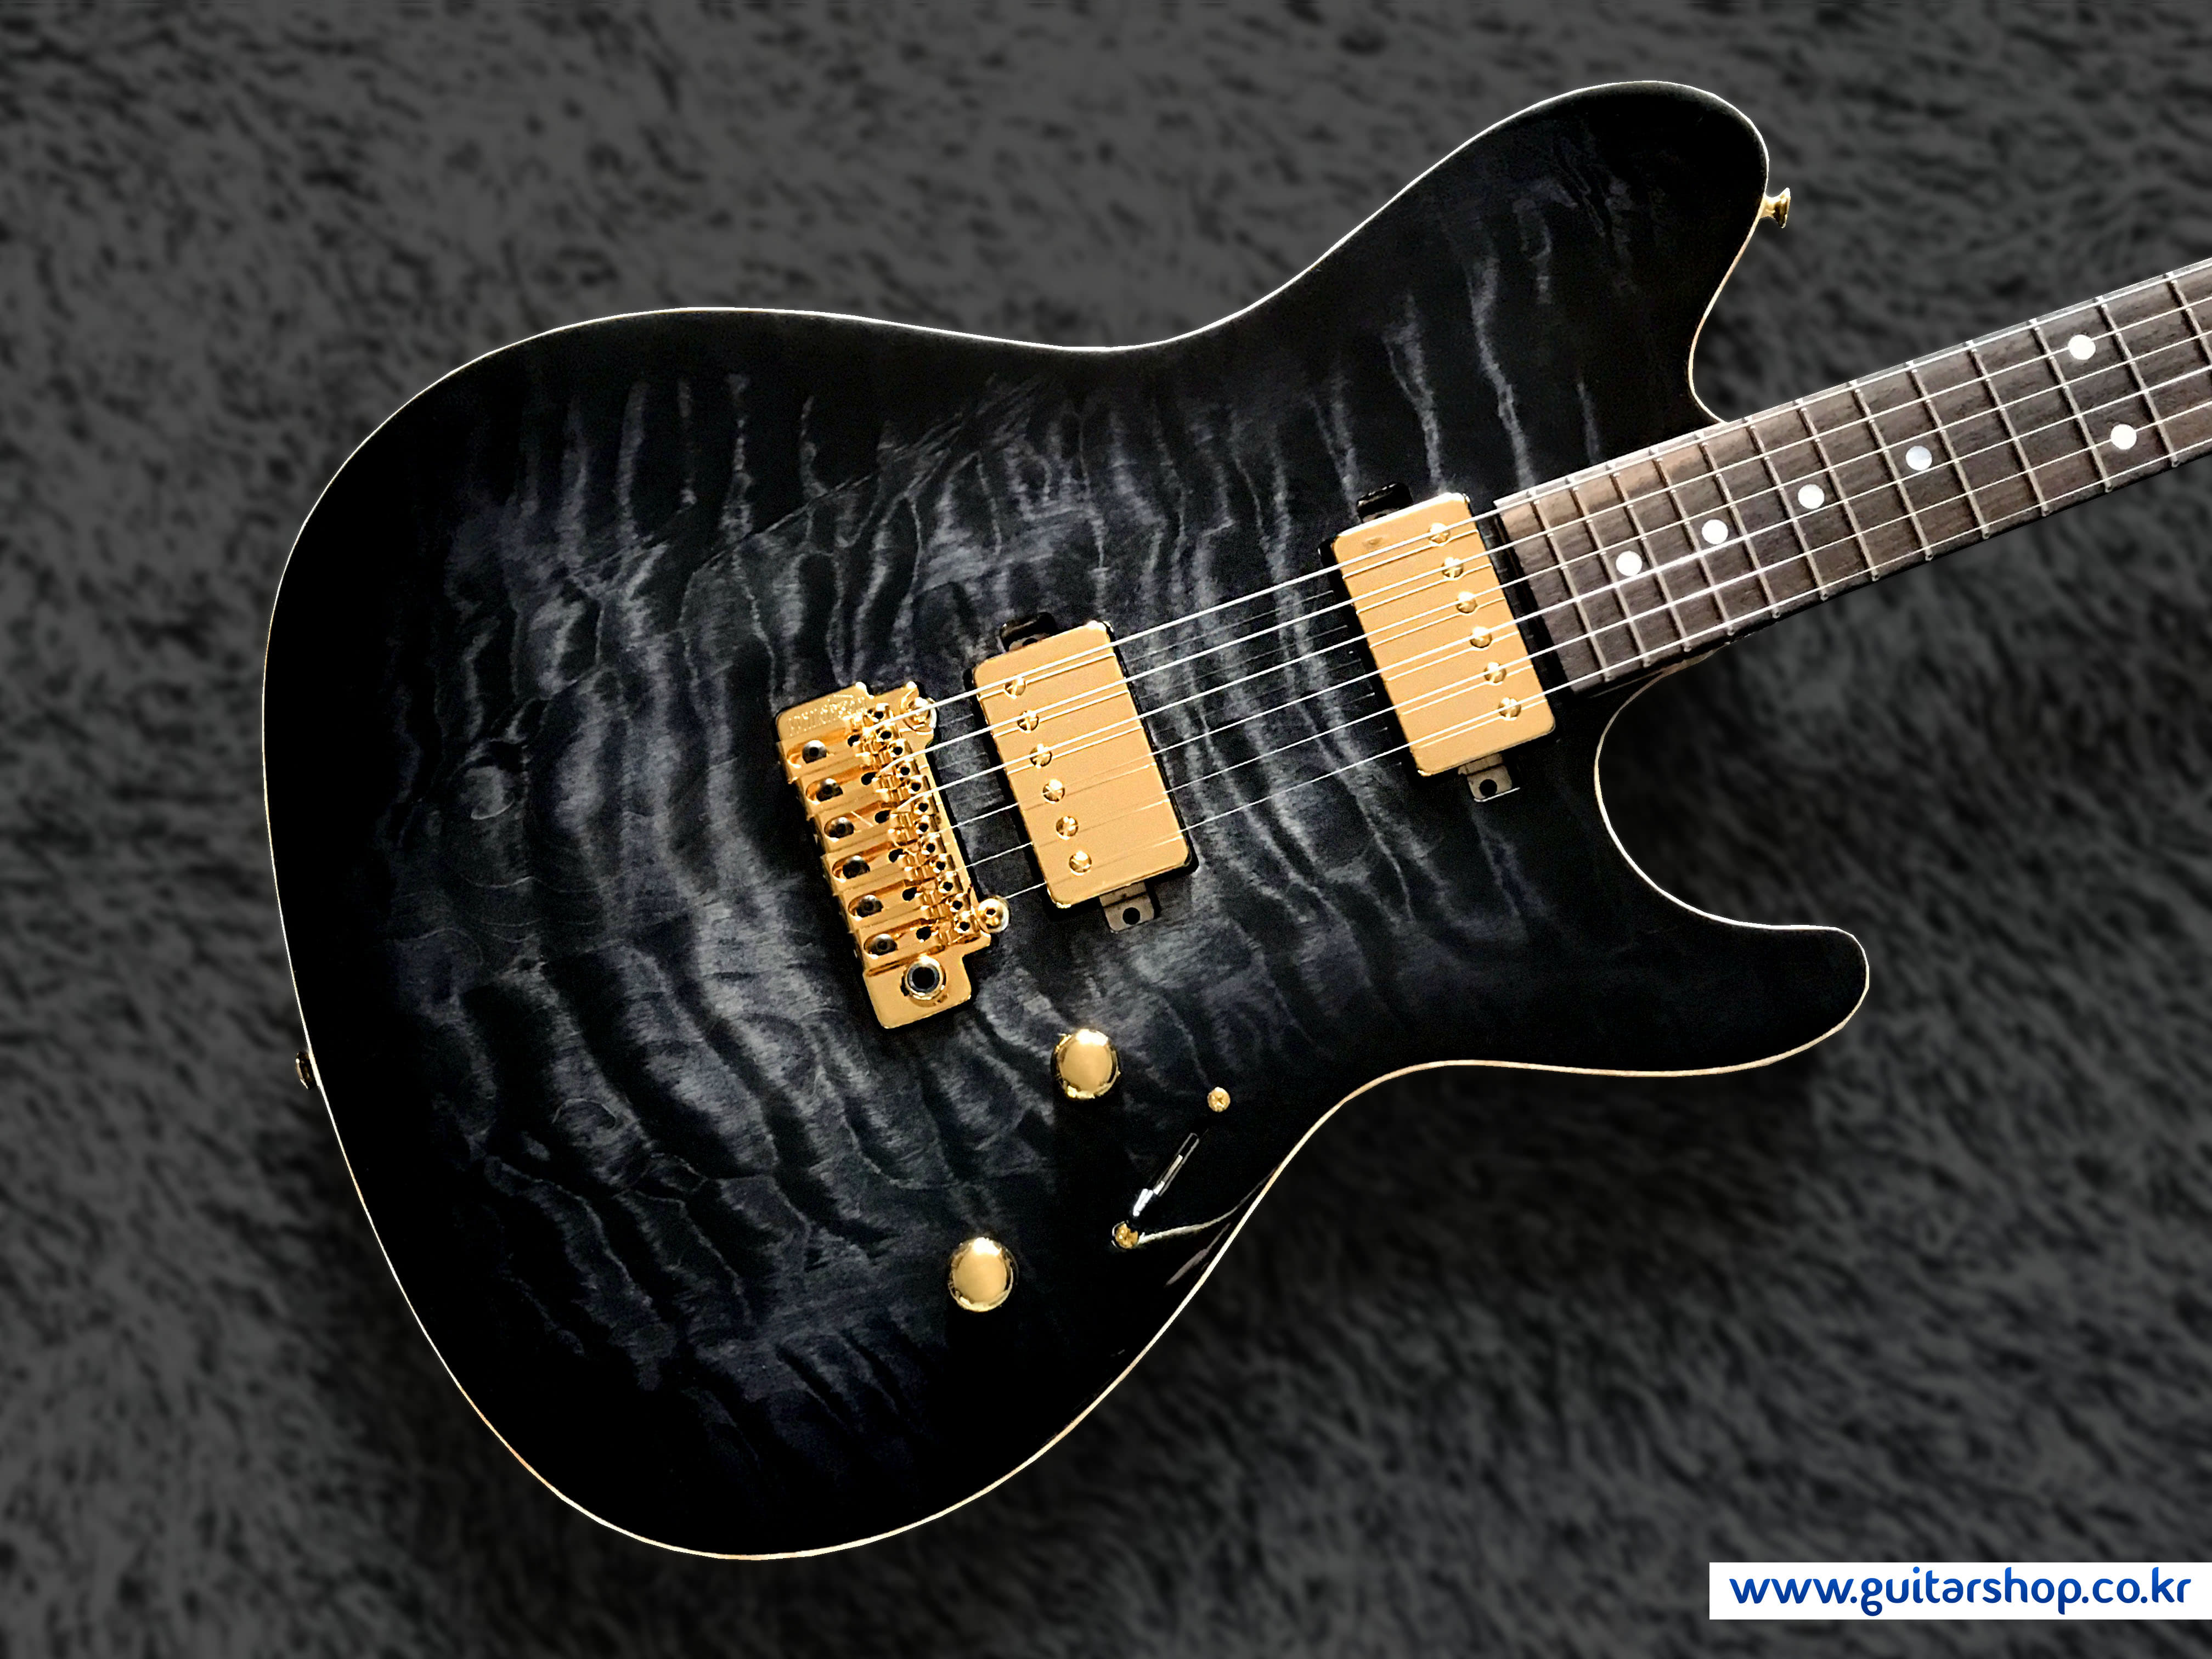 SUGI DS496IR (Seethrough Black) Guitarshop Limited Edition.